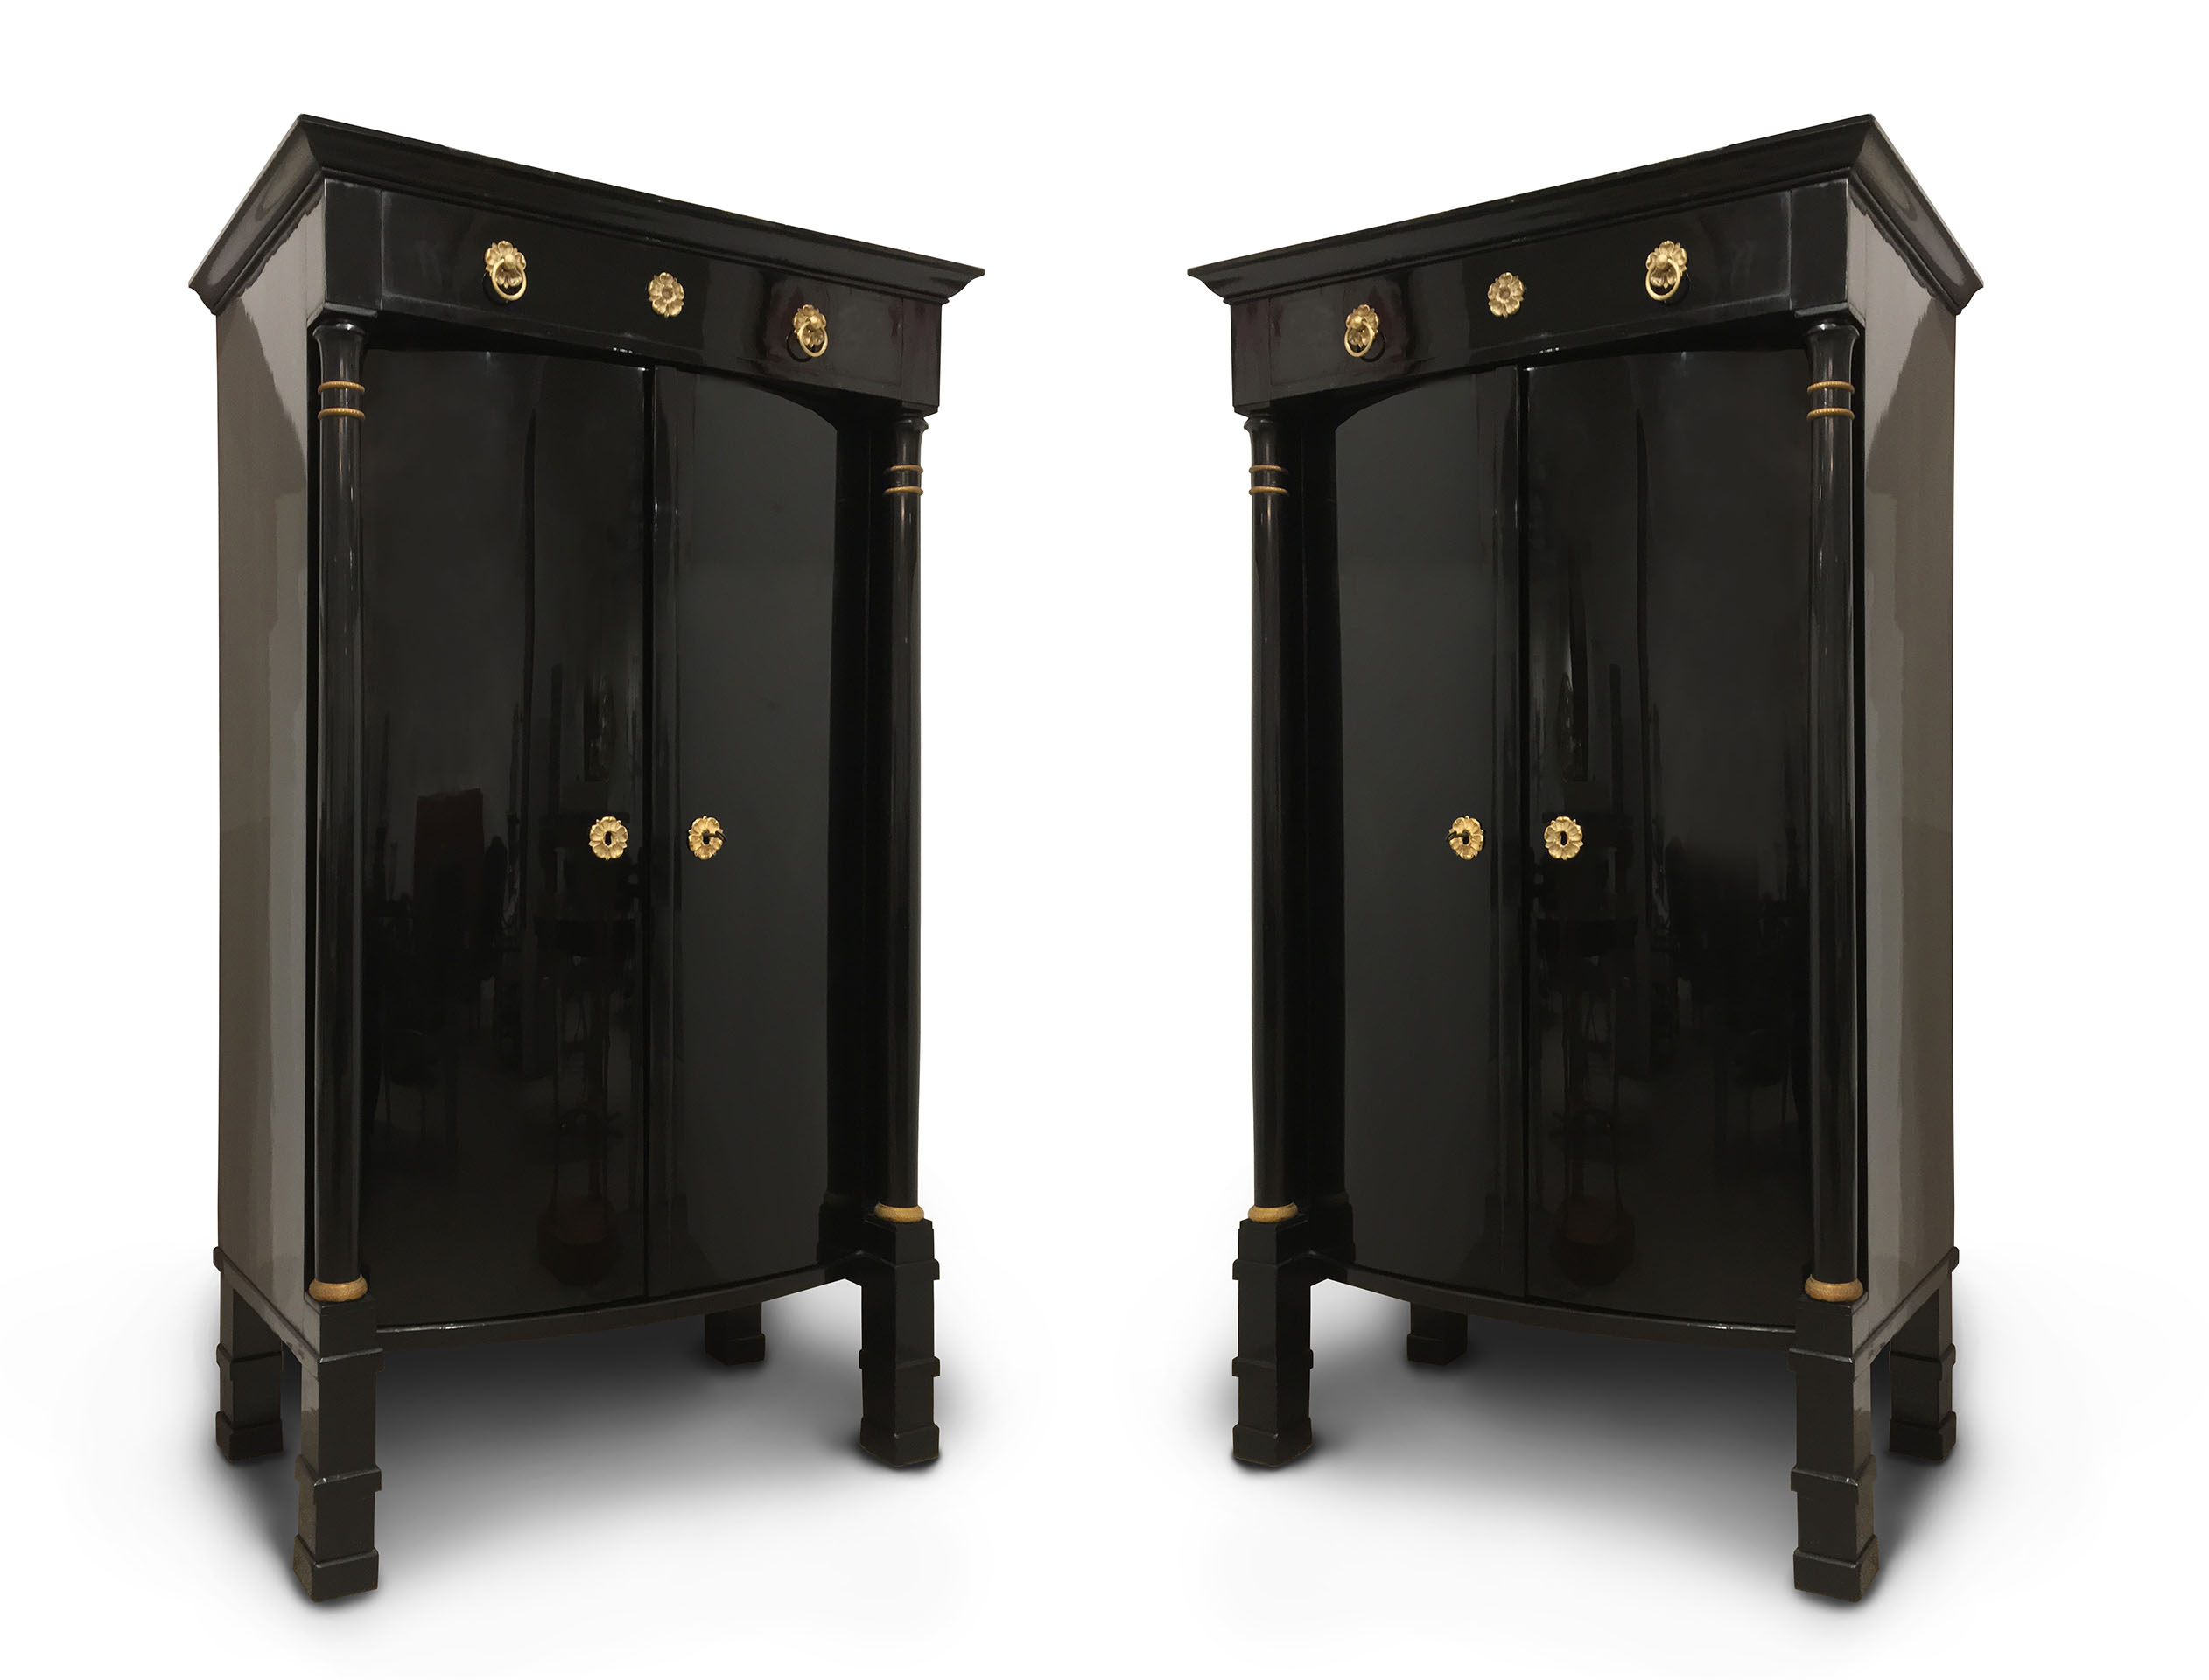 ... Biedermeier Ebonized 2 Door Armoire Cabinets With A Faux Drawer Over A  Bowed Front And Bronze Mounted Column Legs (circa 1820) GRL4982 Biedermeier  ...